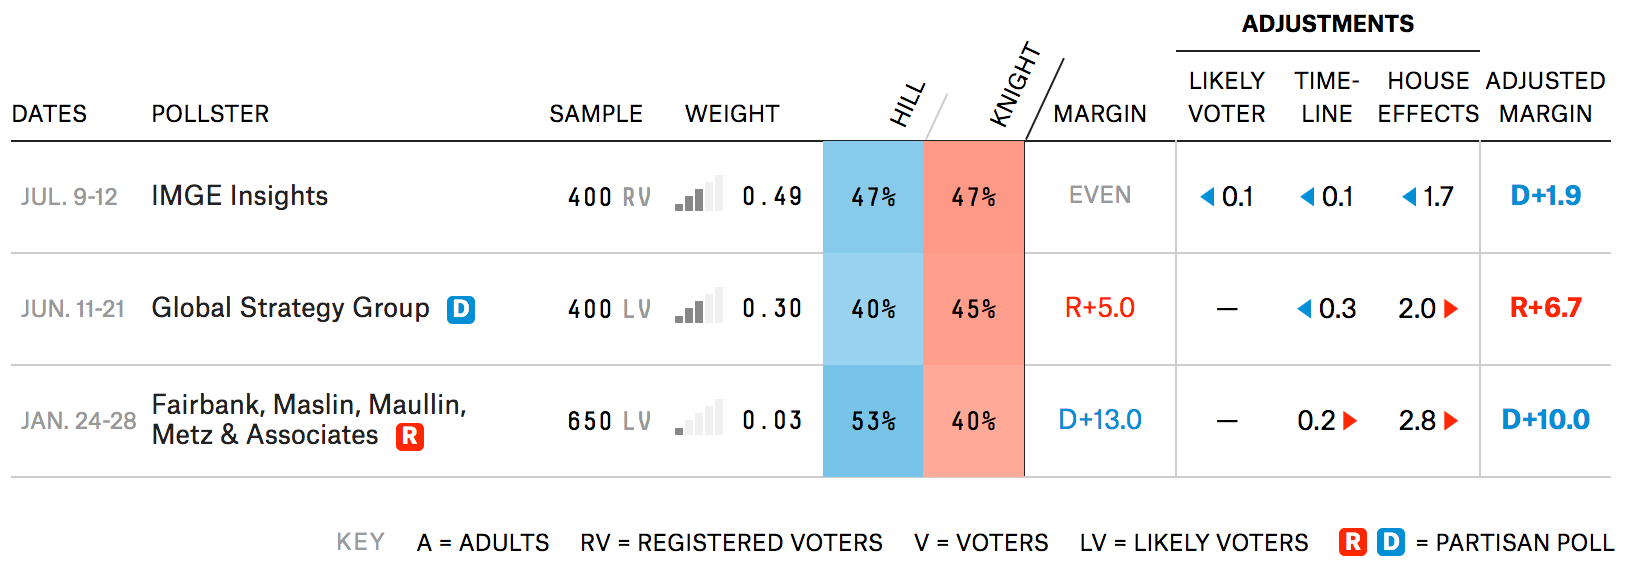 Election Update Check Out How The Forecast Works For All 435 House First Point Is Self Explanatory But Other Two May Not Be So This Part Also Pretty Things Are Worth Noting In Weight Column You Can See Much Model Relies On Each